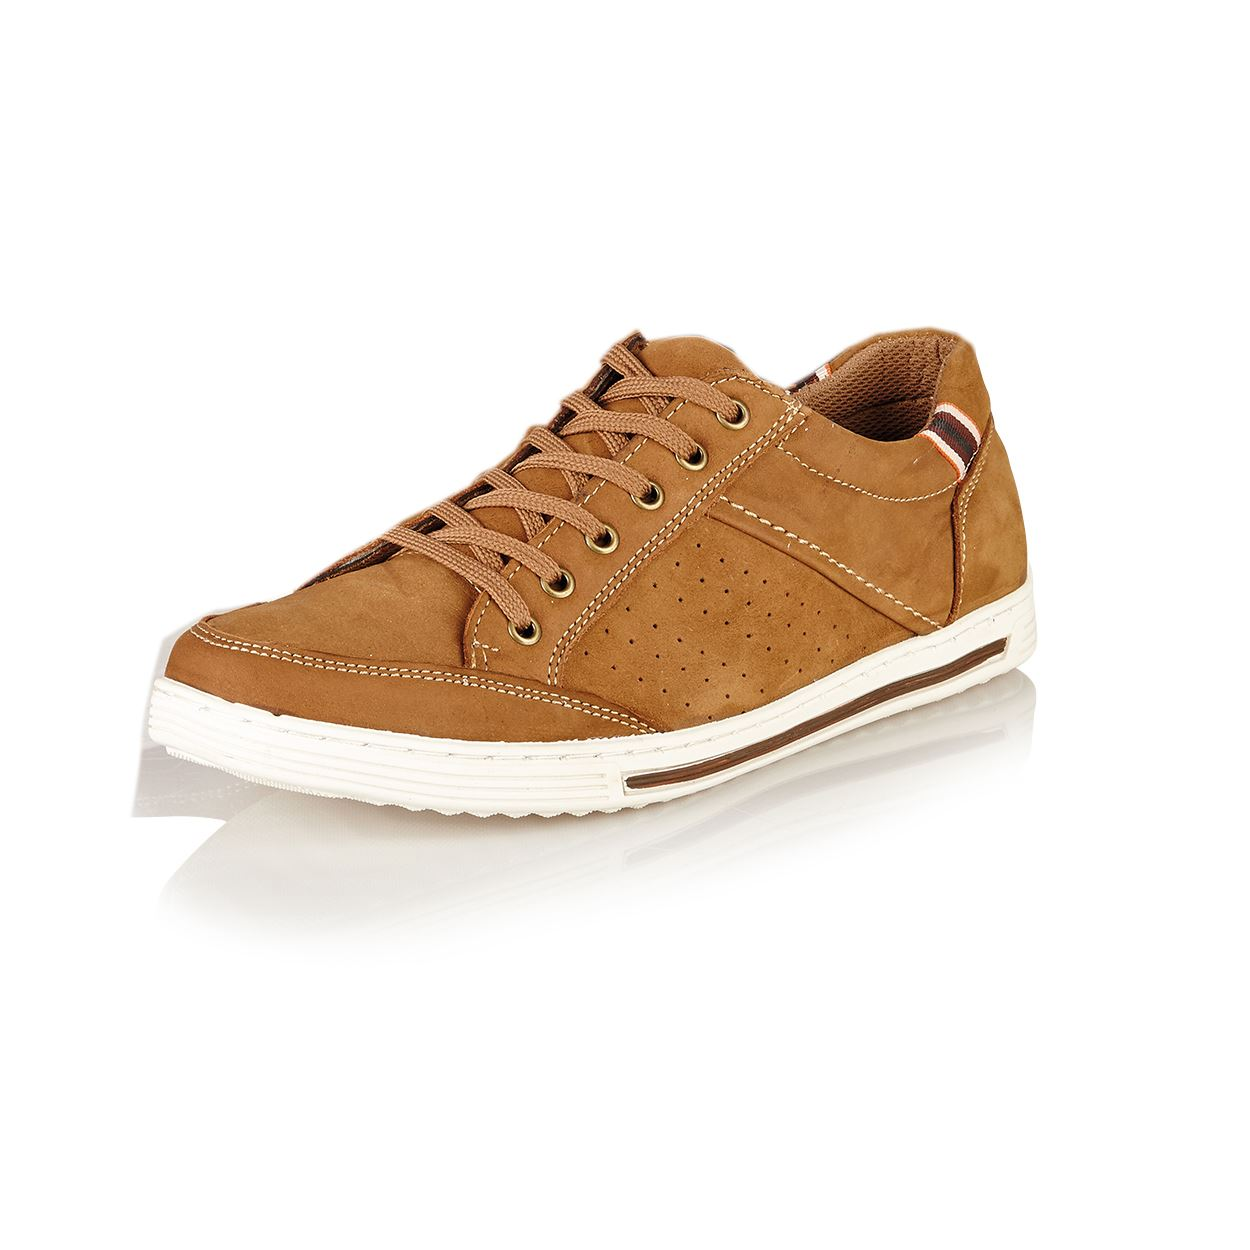 Maverick-Mens-Nubuck-Leather-Lace-Up-Casual-Gym-Trainers-Shoes-Size